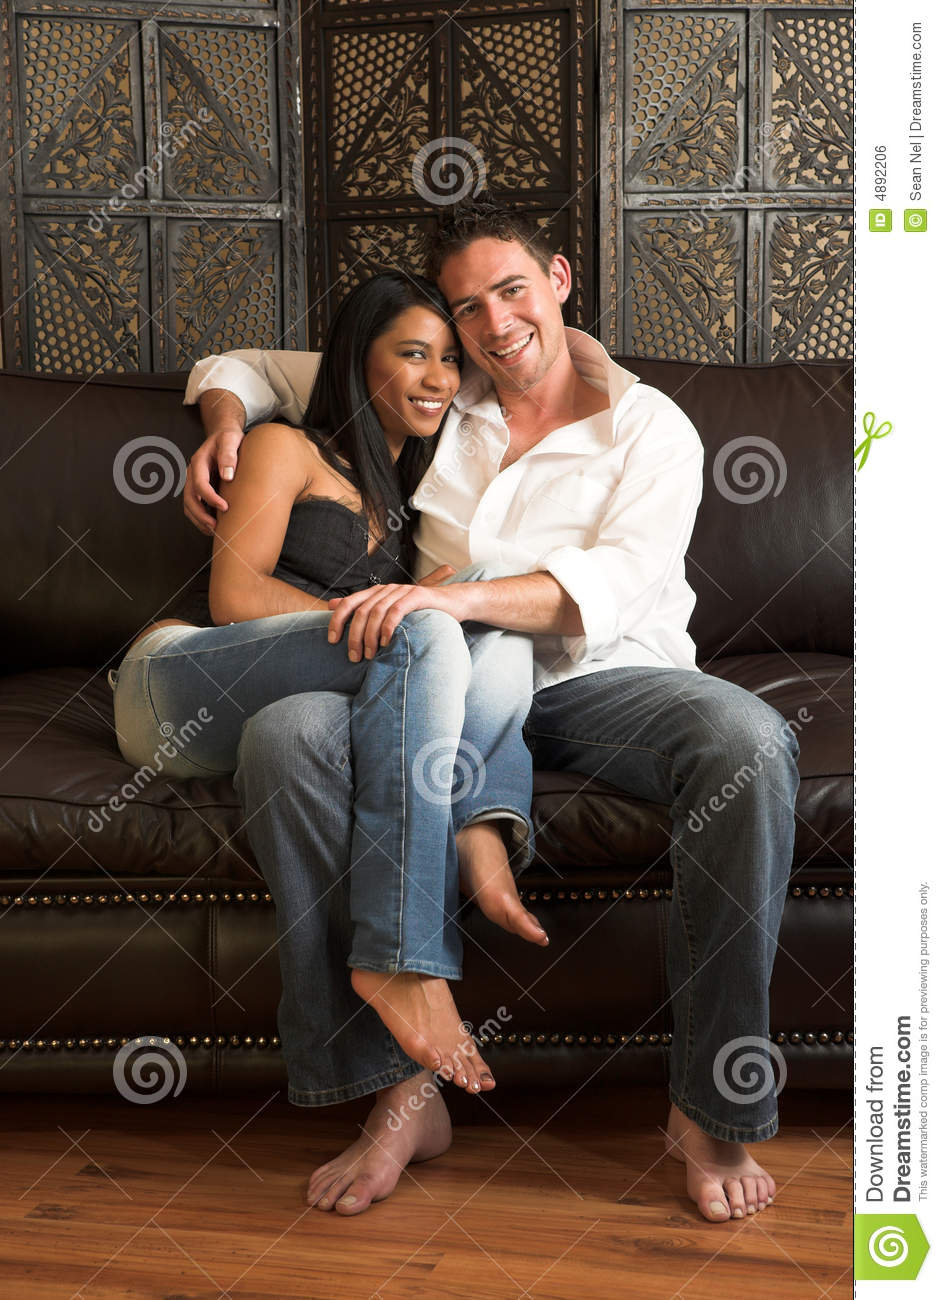 Intimate Lovers Embrace Royalty Free Stock Image Image